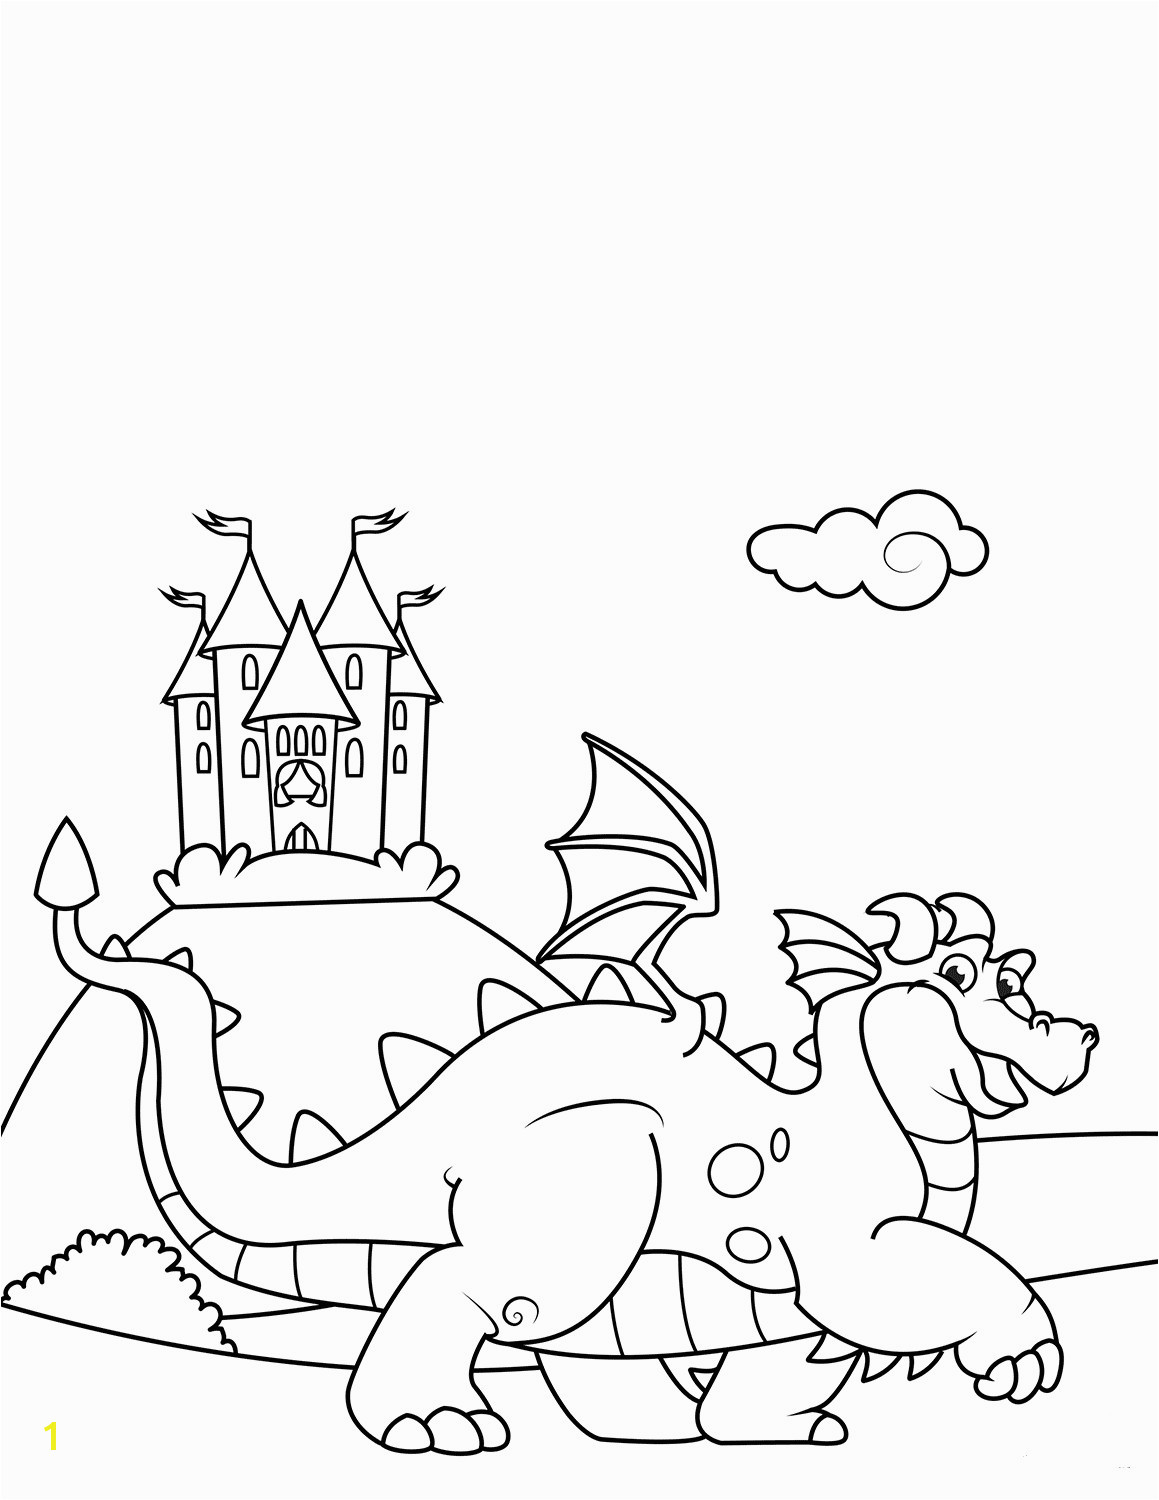 Slitherio Coloring Pages Best 35 Free Printable Dragon Coloring Pages 12 Luxury Slitherio Coloring